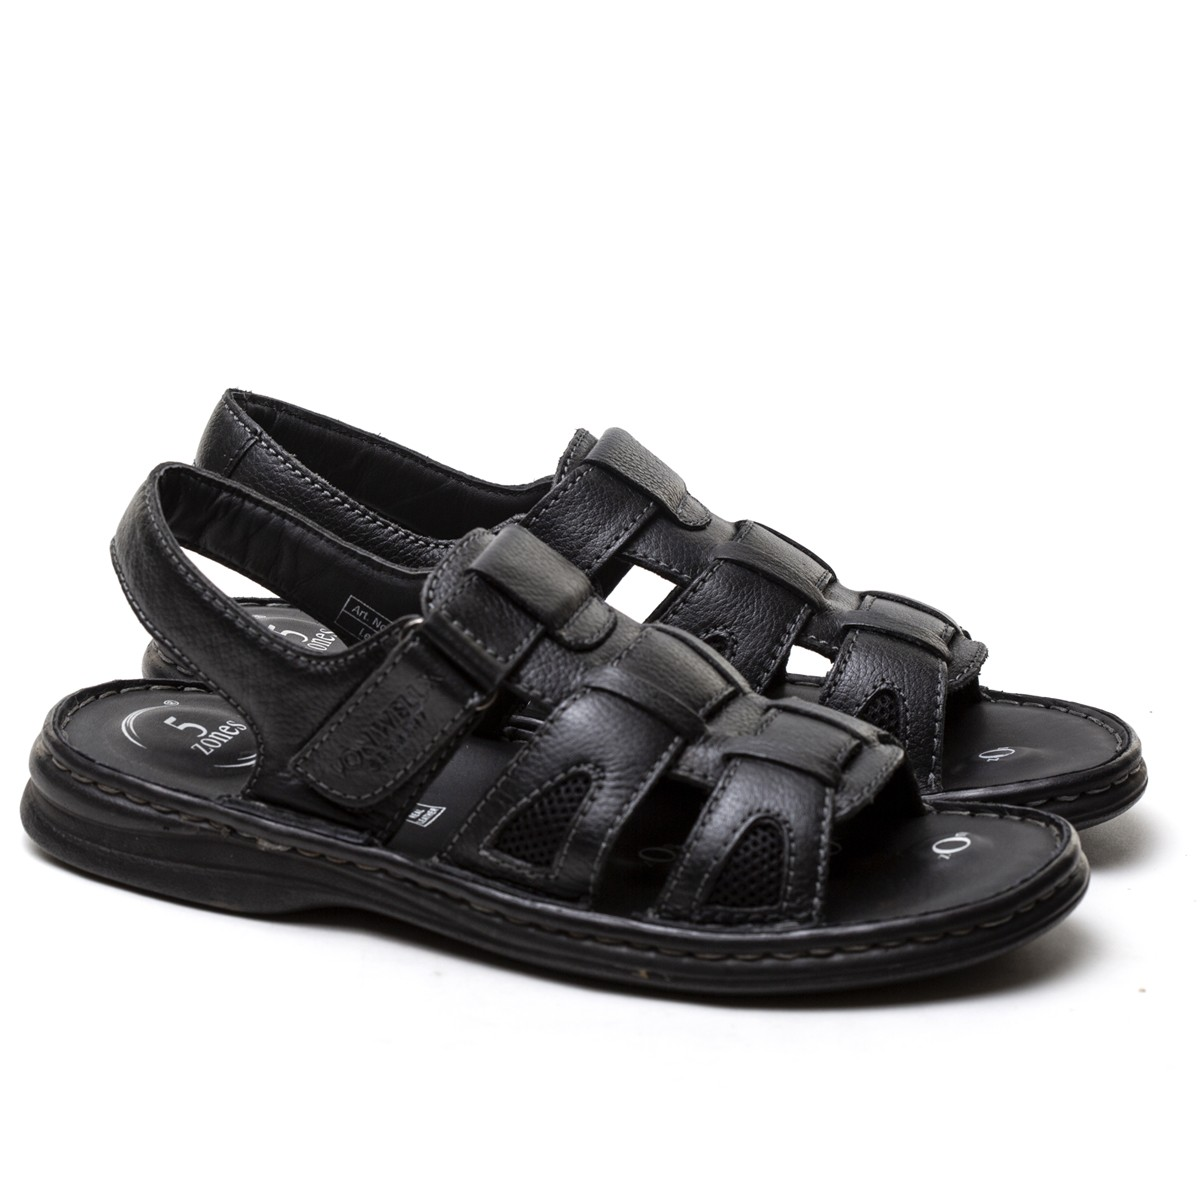 Buy Von Wellx Germany Comfort Rhys Black Sandals Online in Maharashtra